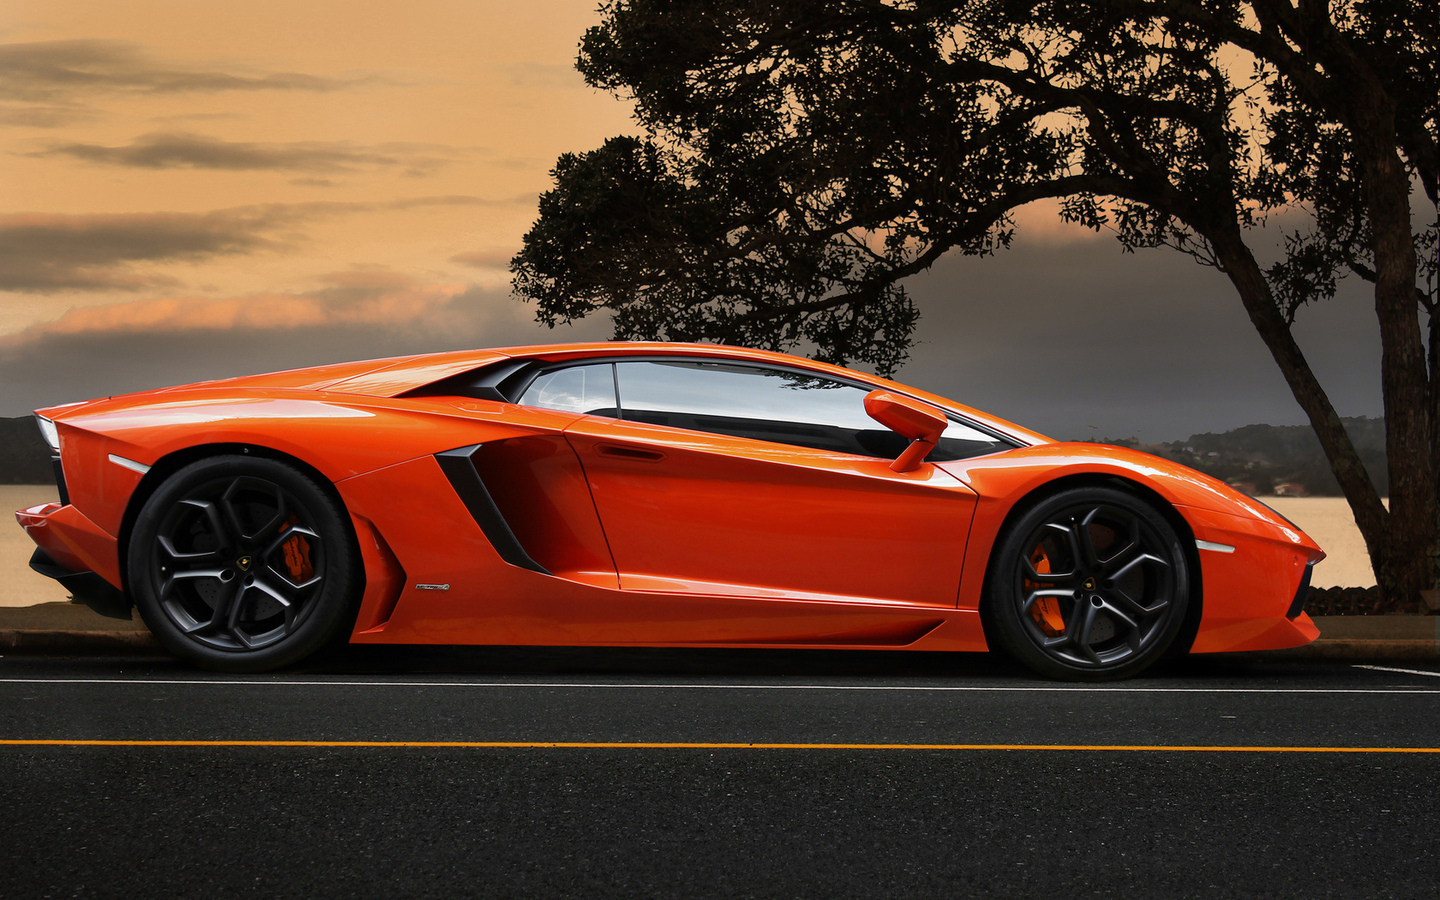 tree, aventador, ламборгини, lamborghini, supercar, orange, sky, lp700-4